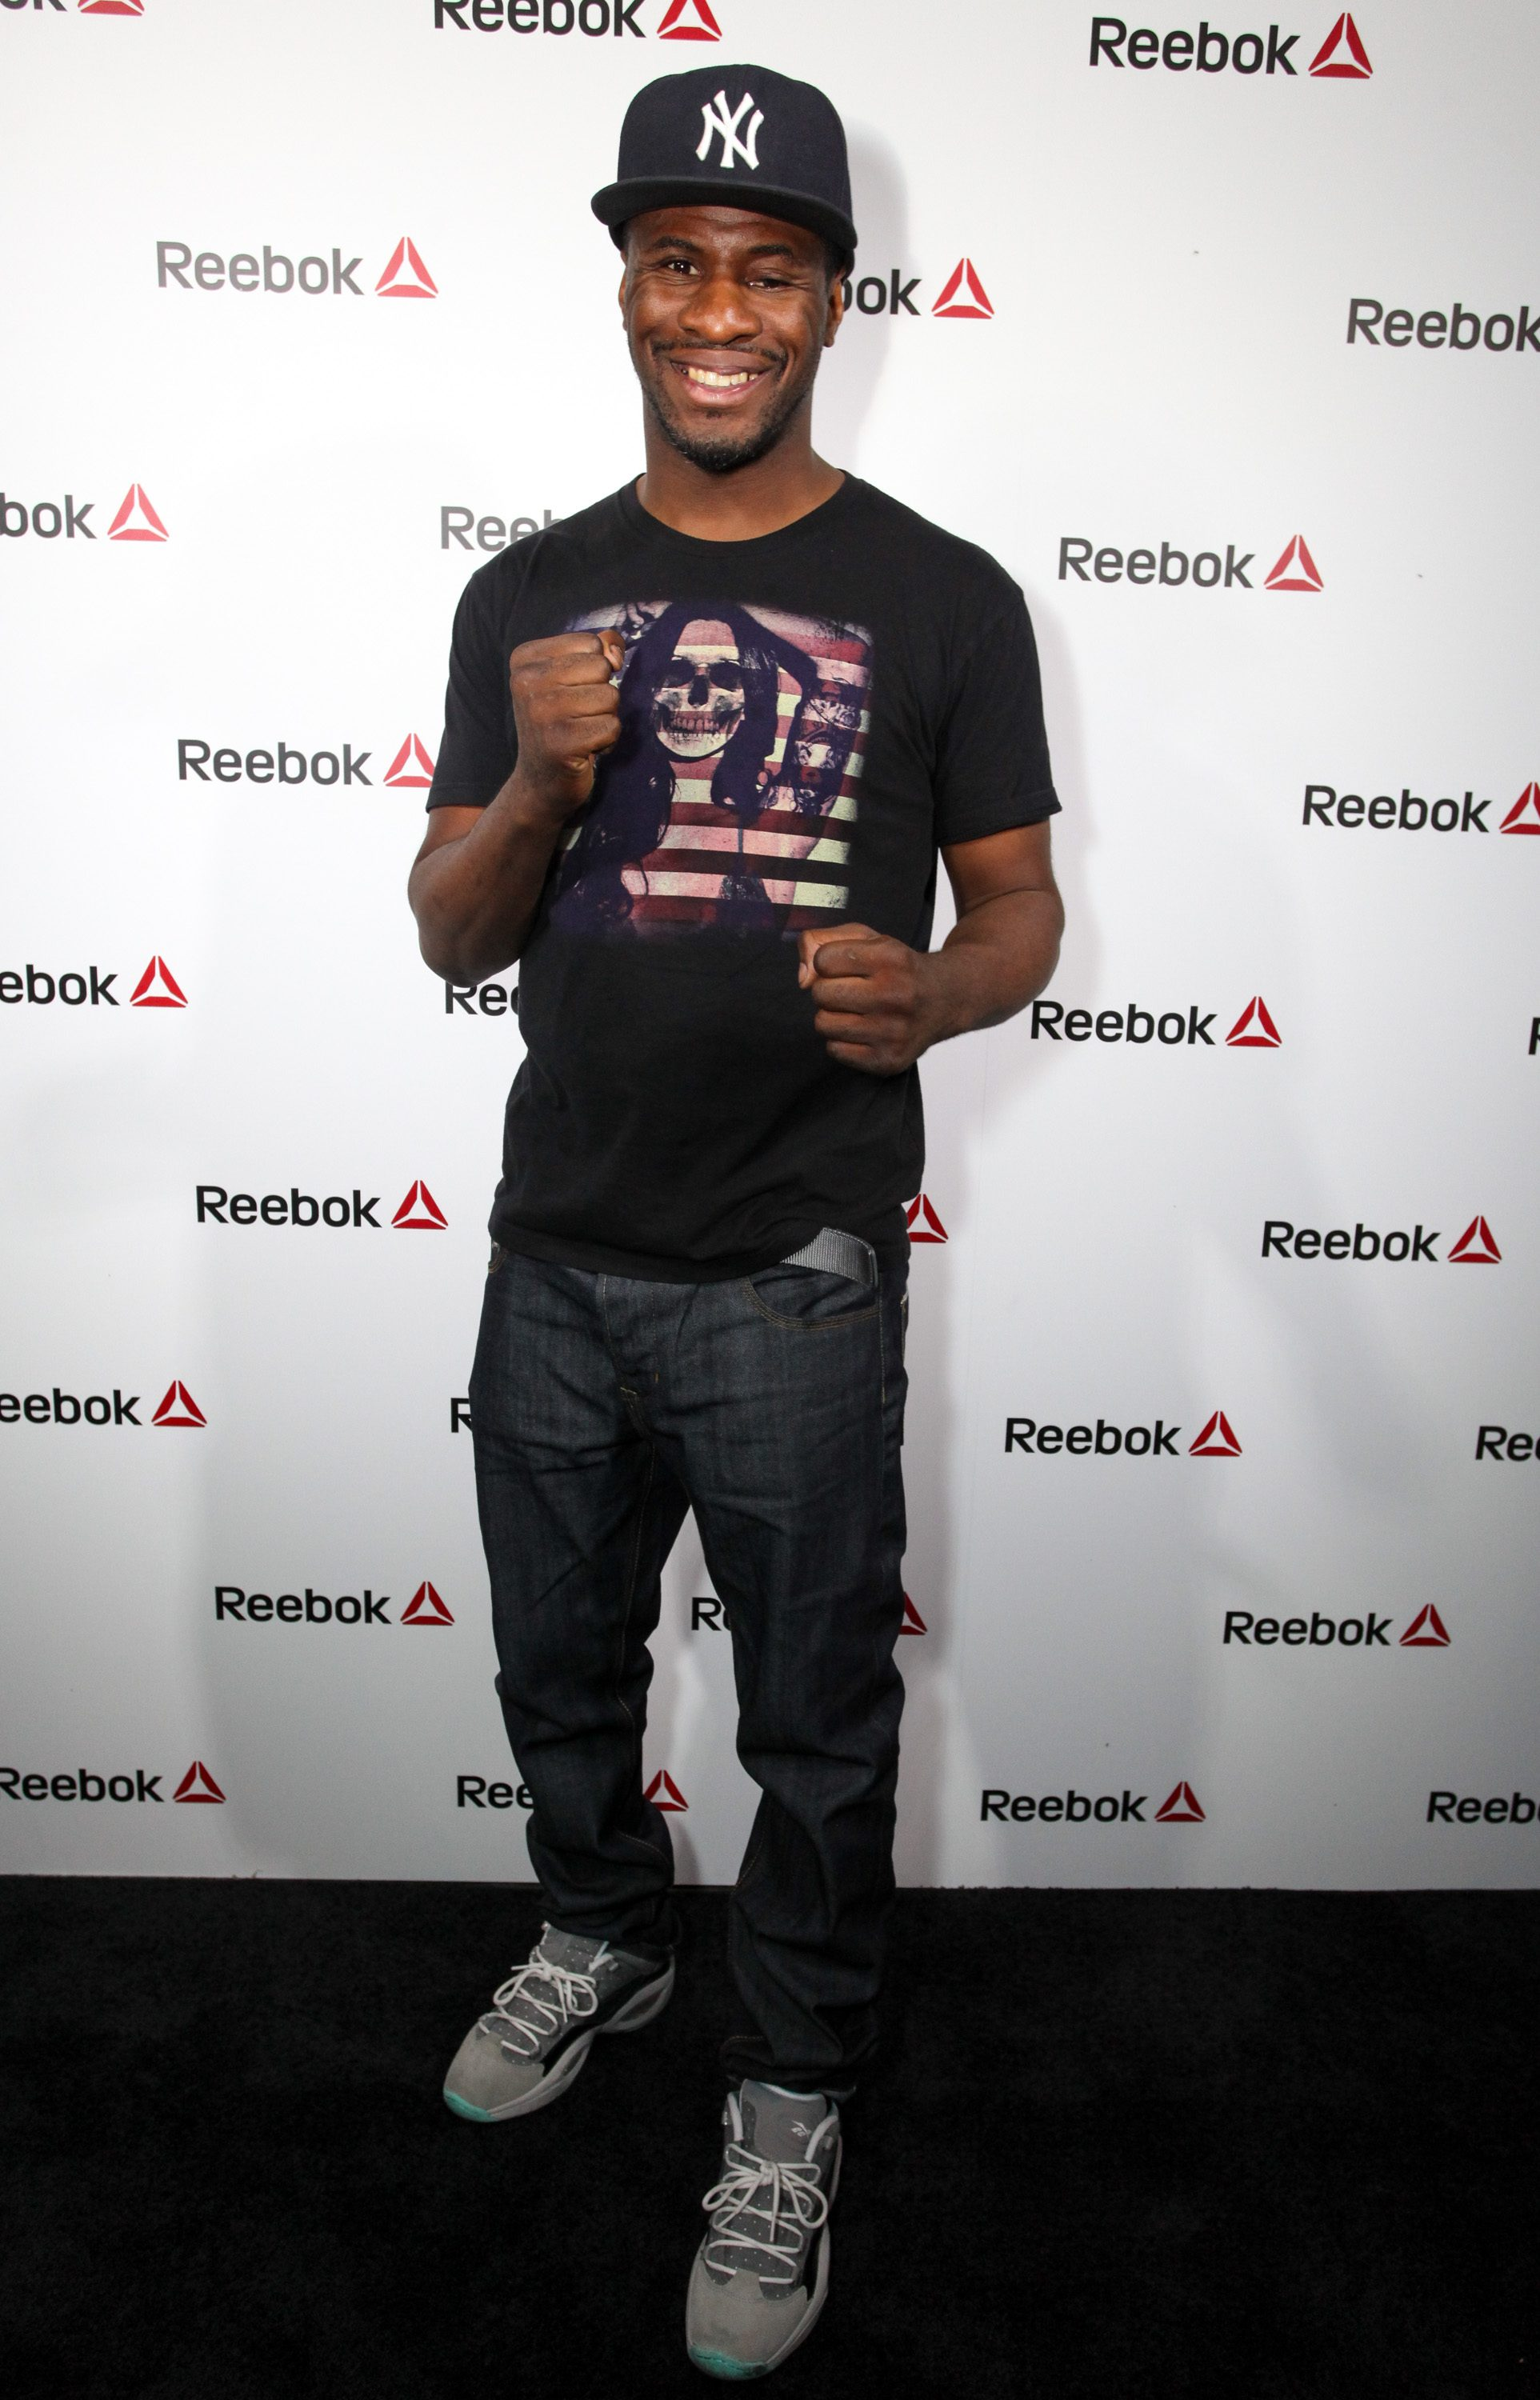 NEW YORK, NY - SEPTEMBER 16: Eric Kelly attends The Reebok #girlswithgrit showcase at Marquee on September 16, 2015 in New York City. (Photo by Donald Bowers/Getty Images for Reebok)